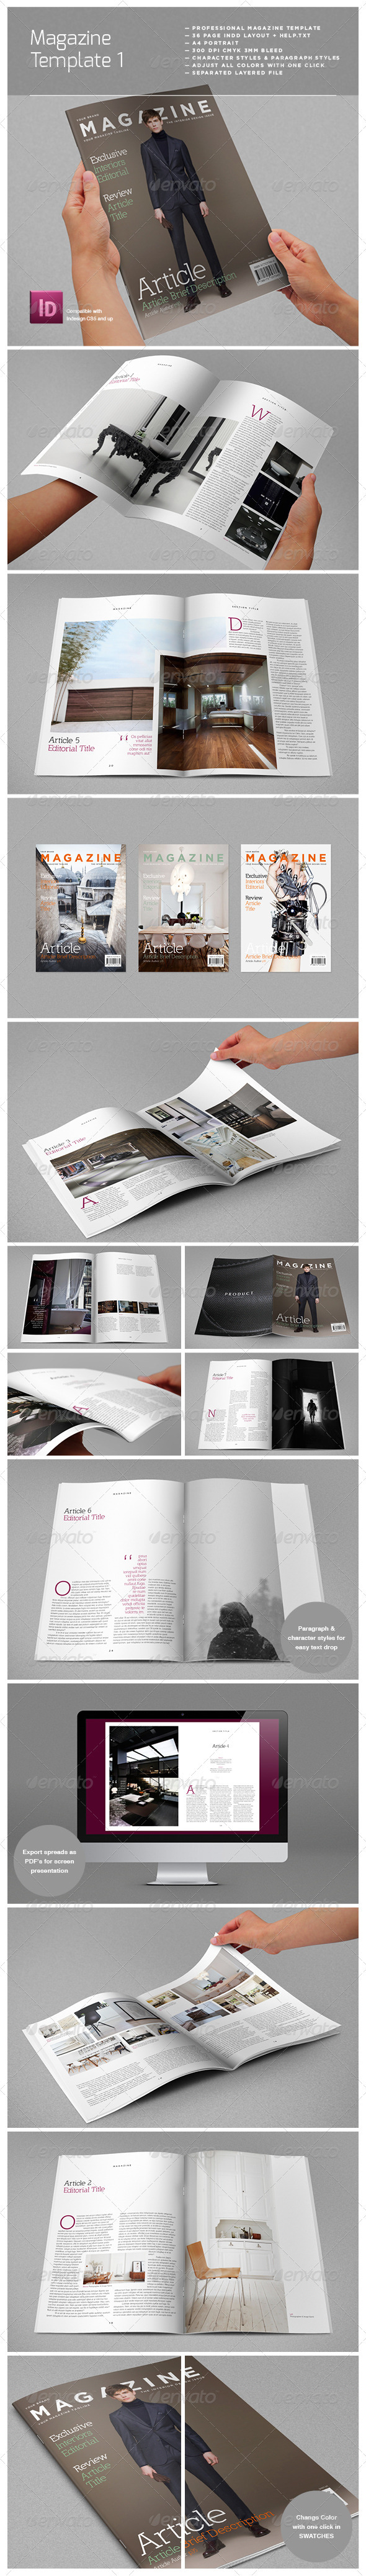 GraphicRiver Magazine Complete Template 3932642